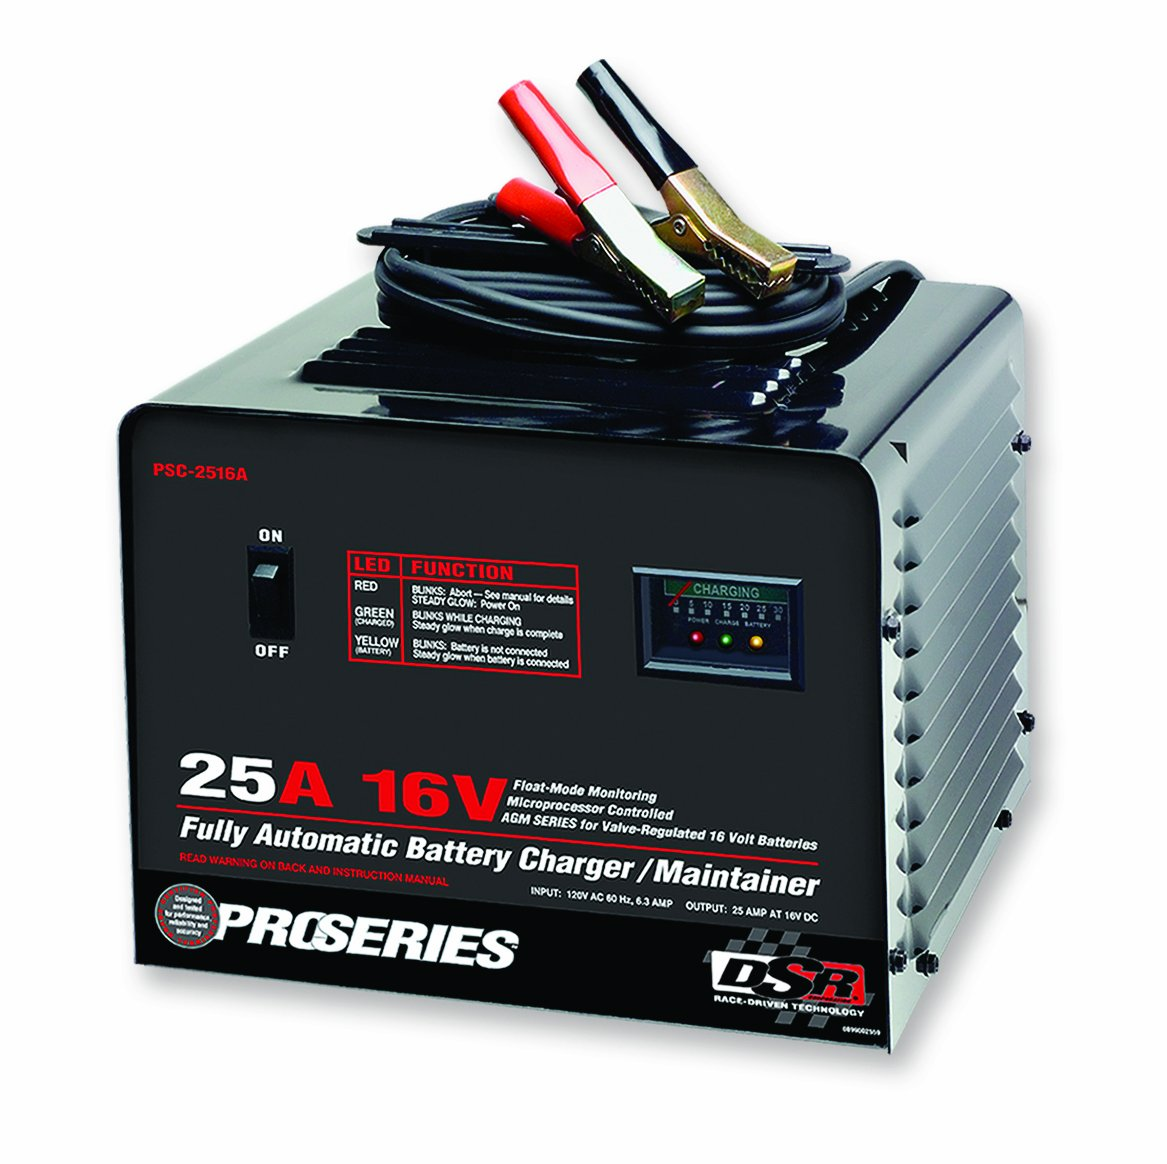 Schumacher PSC-2516A DSR ProSeries 25 Amp 16 Volt Automatic Specialty Battery Charger/Maintainer